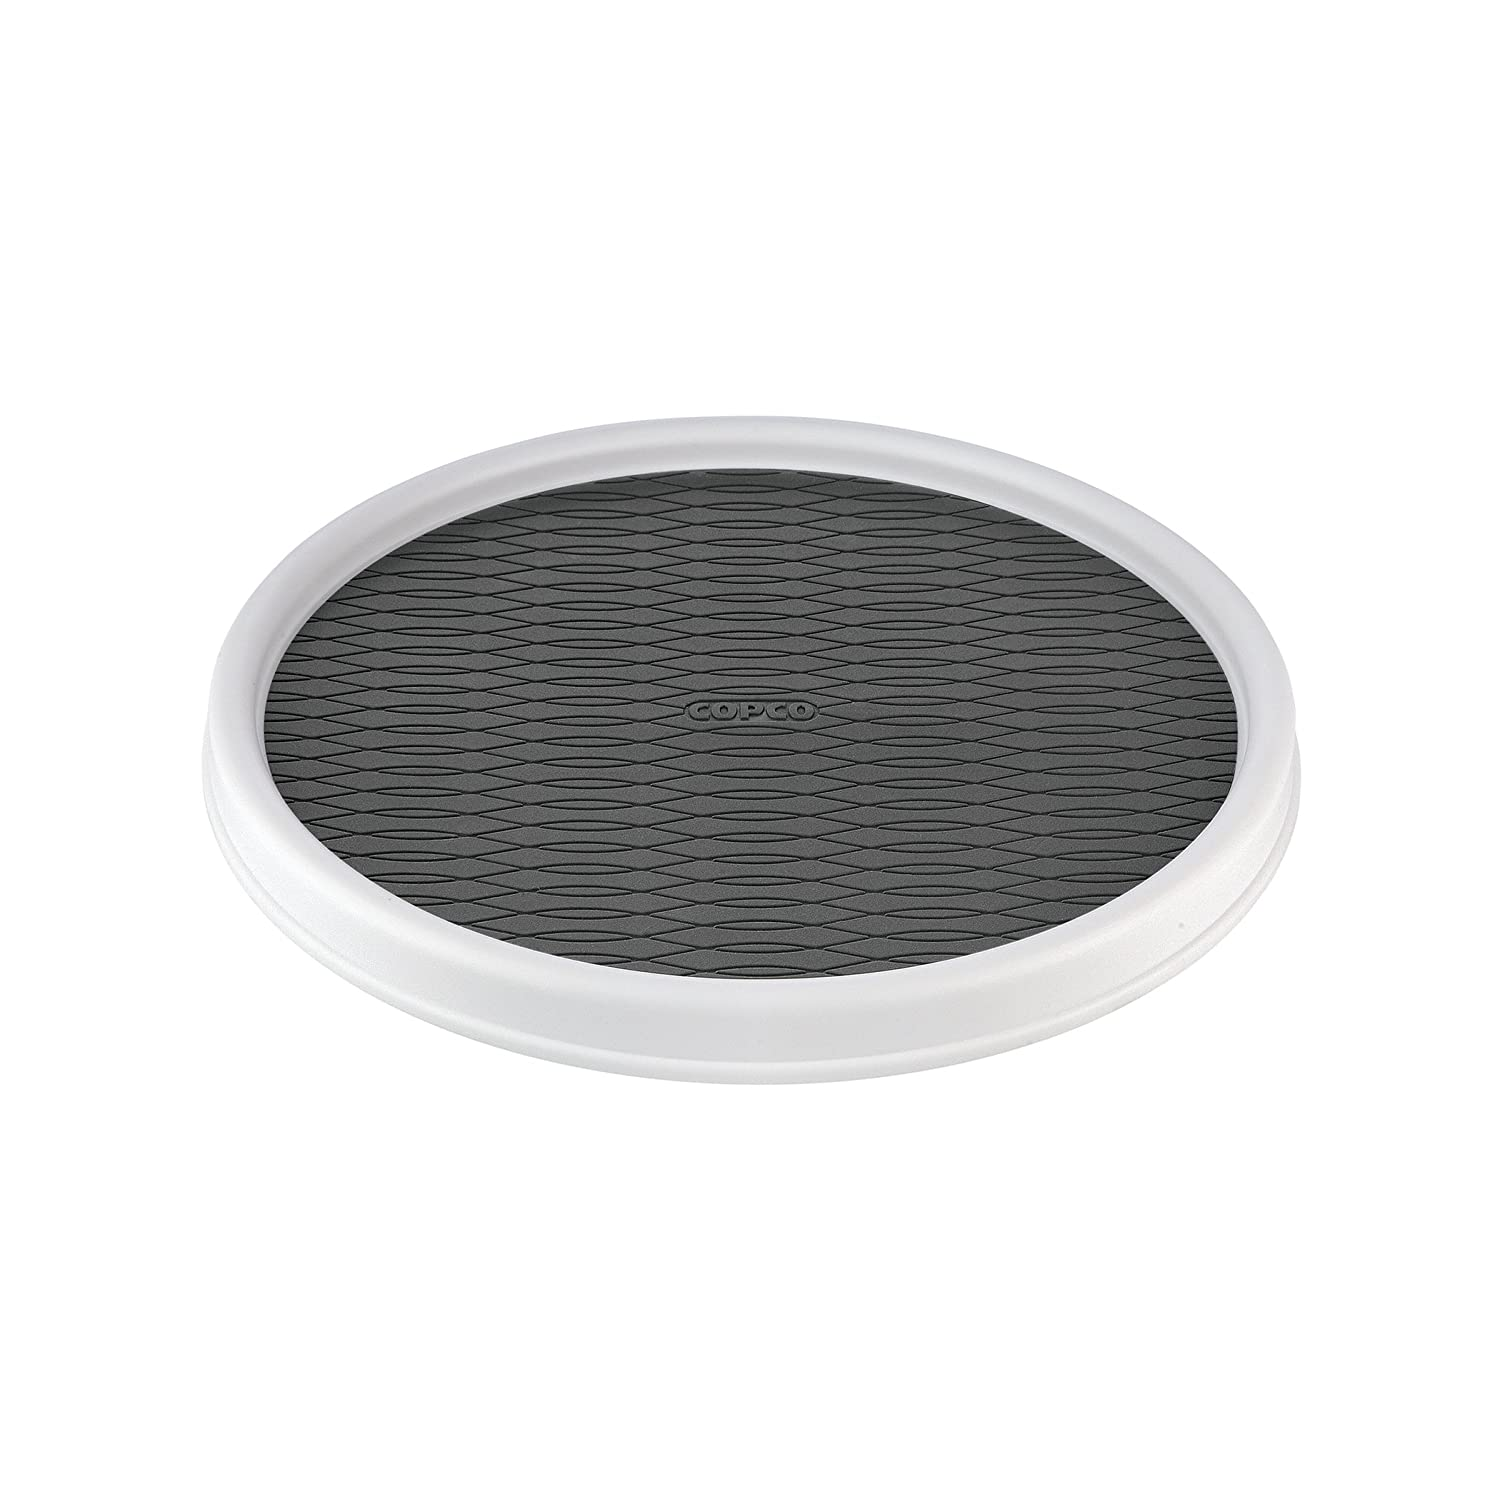 Copco Non-Skid Cabinet Turntable - Outer rim prevents items from falling off